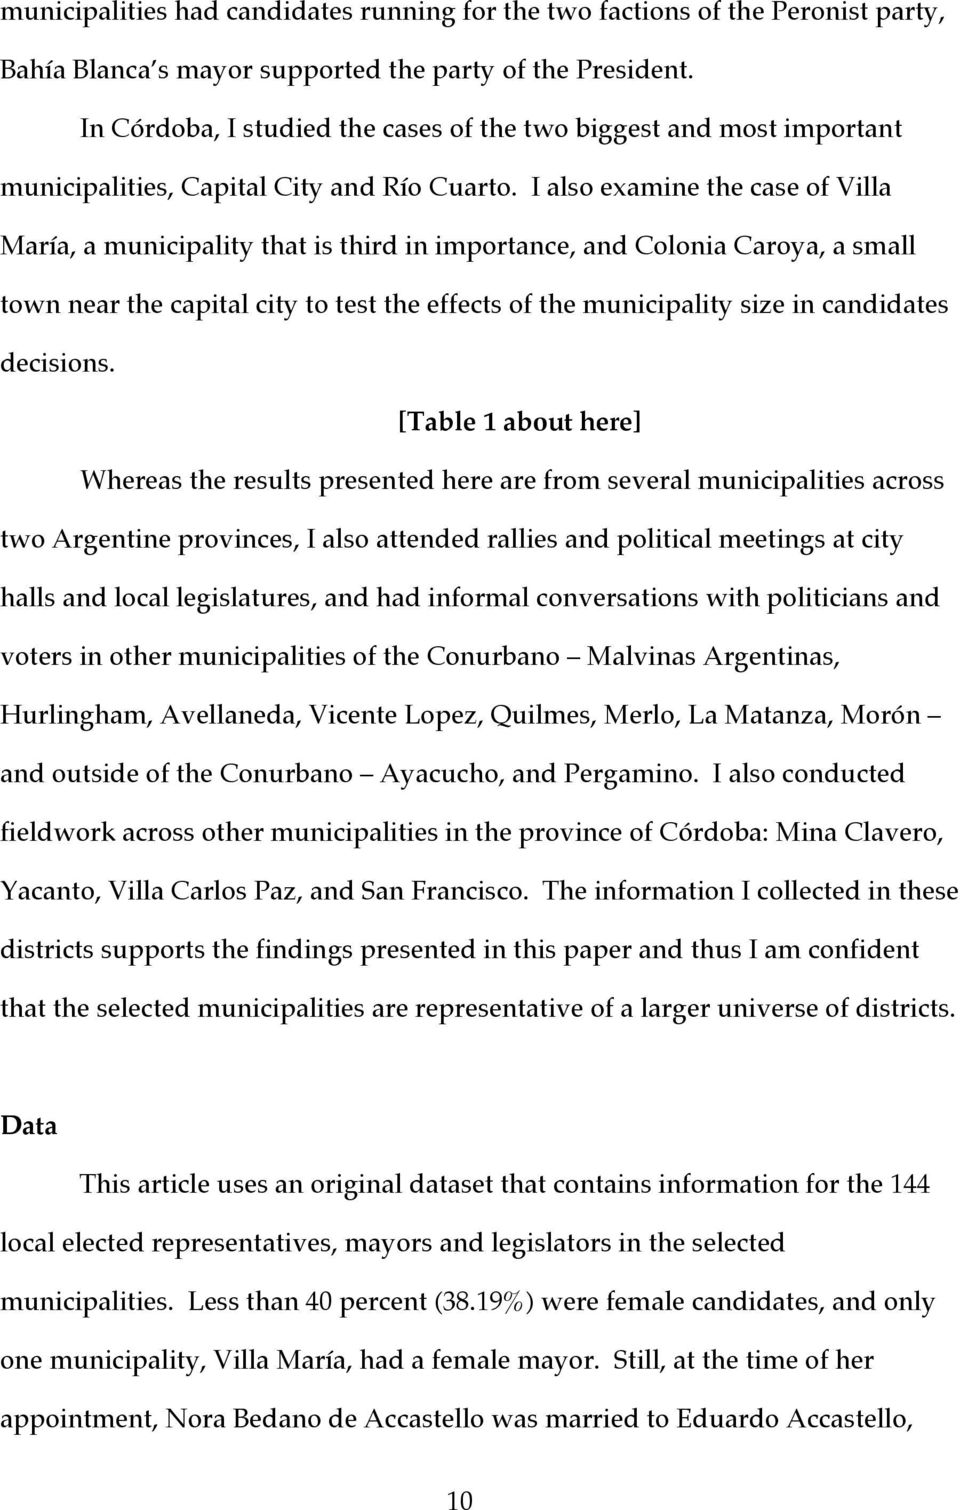 I also examine the case of Villa María, a municipality that is third in importance, and Colonia Caroya, a small town near the capital city to test the effects of the municipality size in candidates